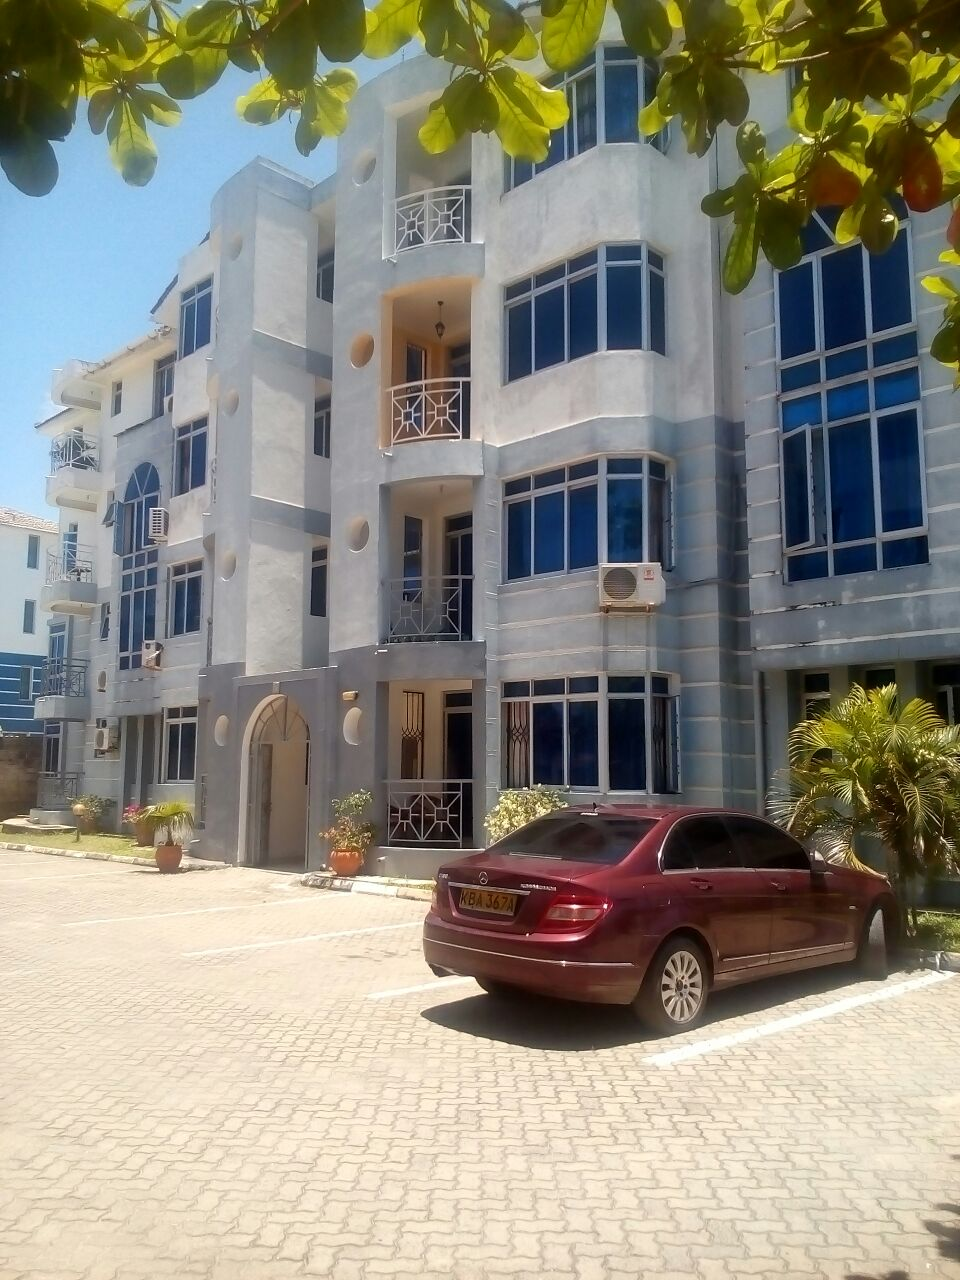 3 bedroom fully furnished apartments for rent in Nyali-Shikara